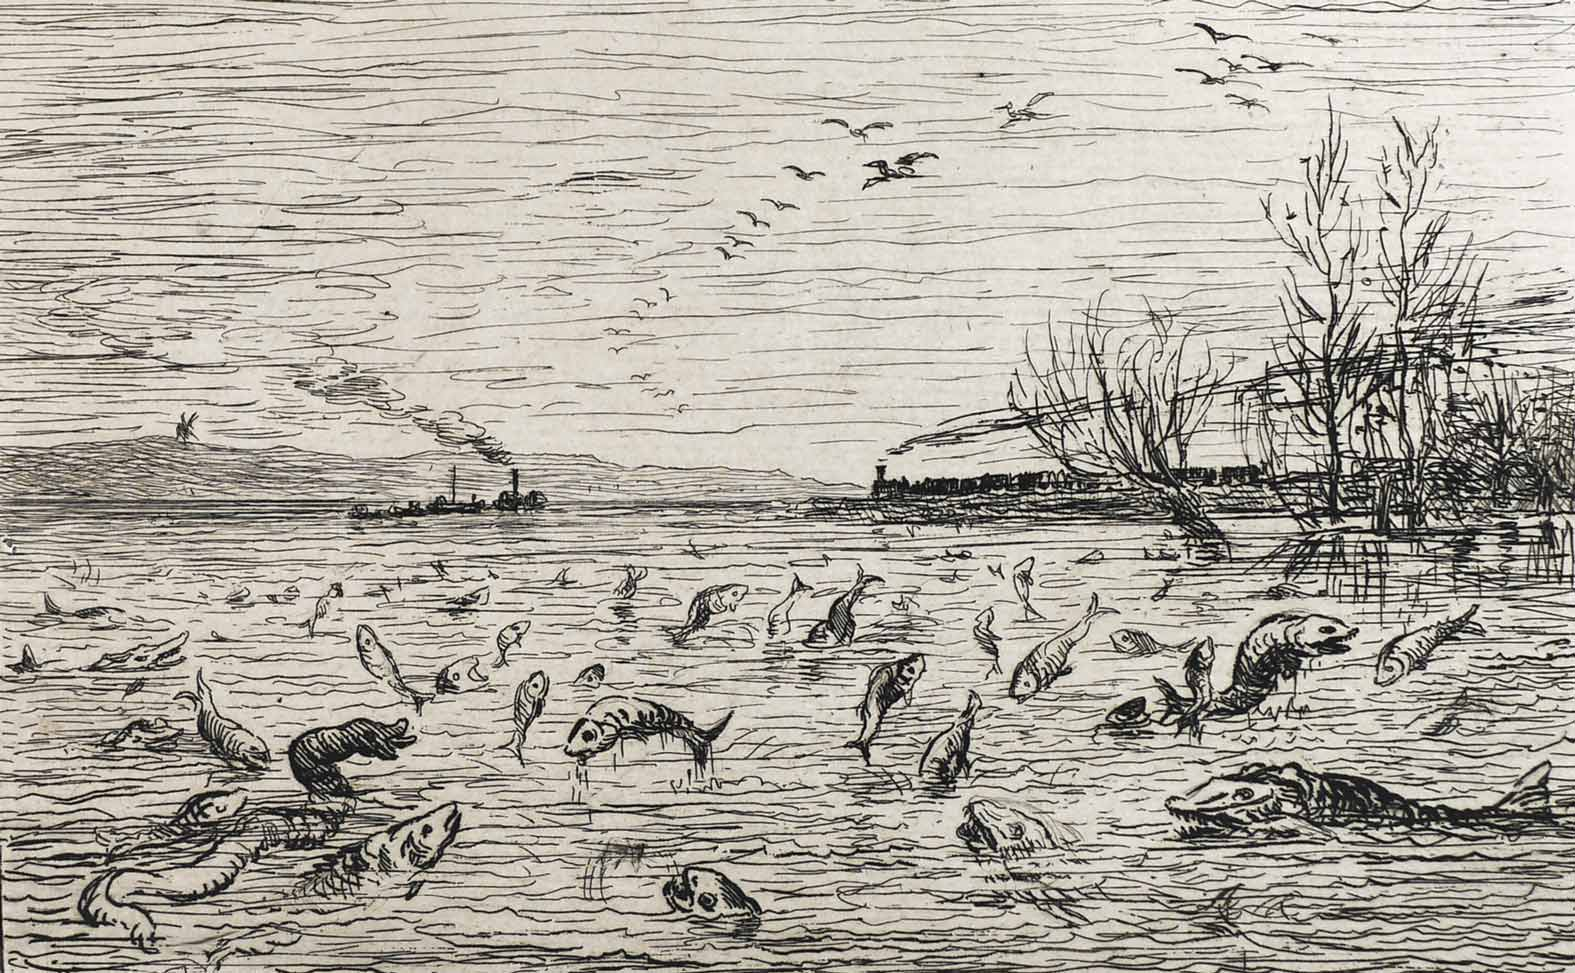 3-Daubigny-Boat-prints-048-Fish-Rejoicing